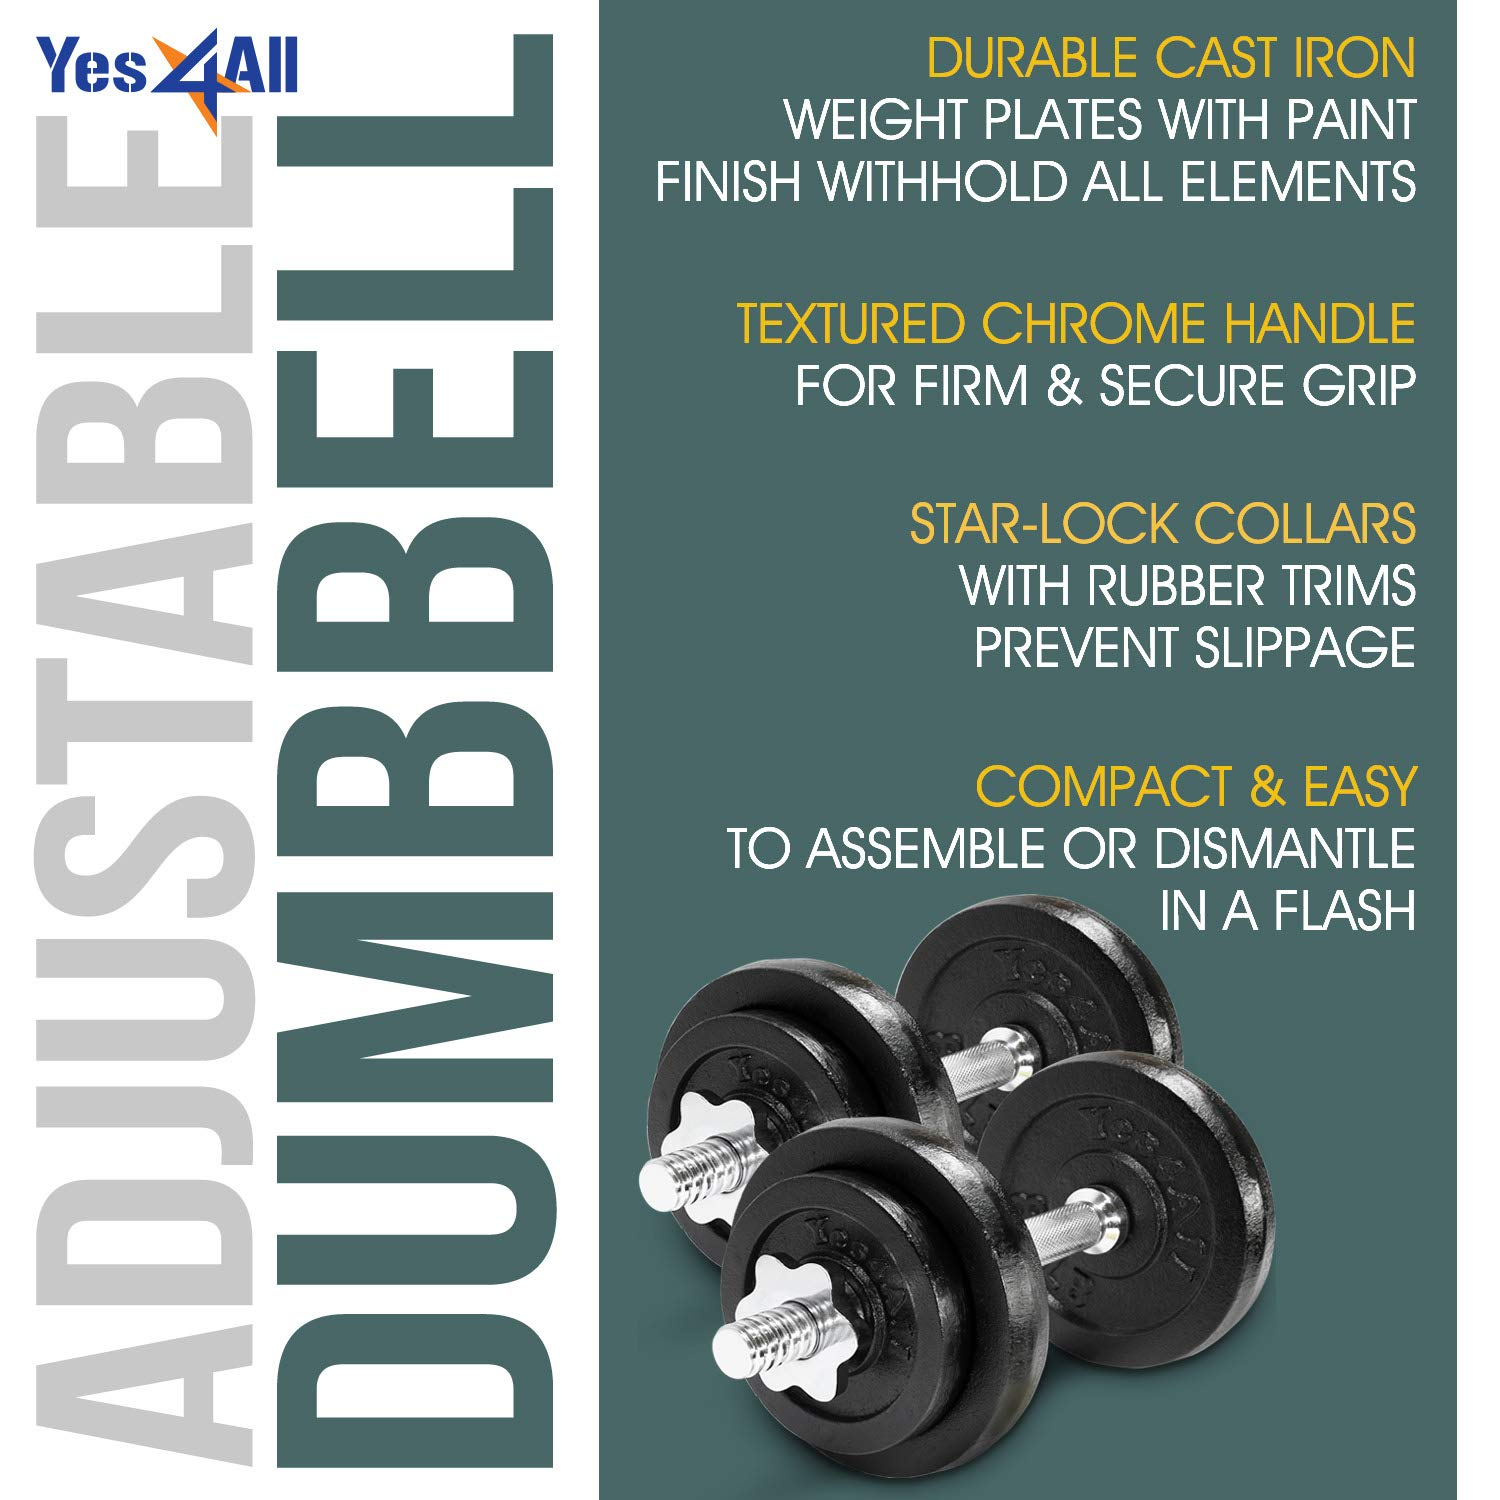 Yes4All Adjustable Dumbbells - 60 lb Dumbbell Weights (Pair) by Yes4All (Image #5)